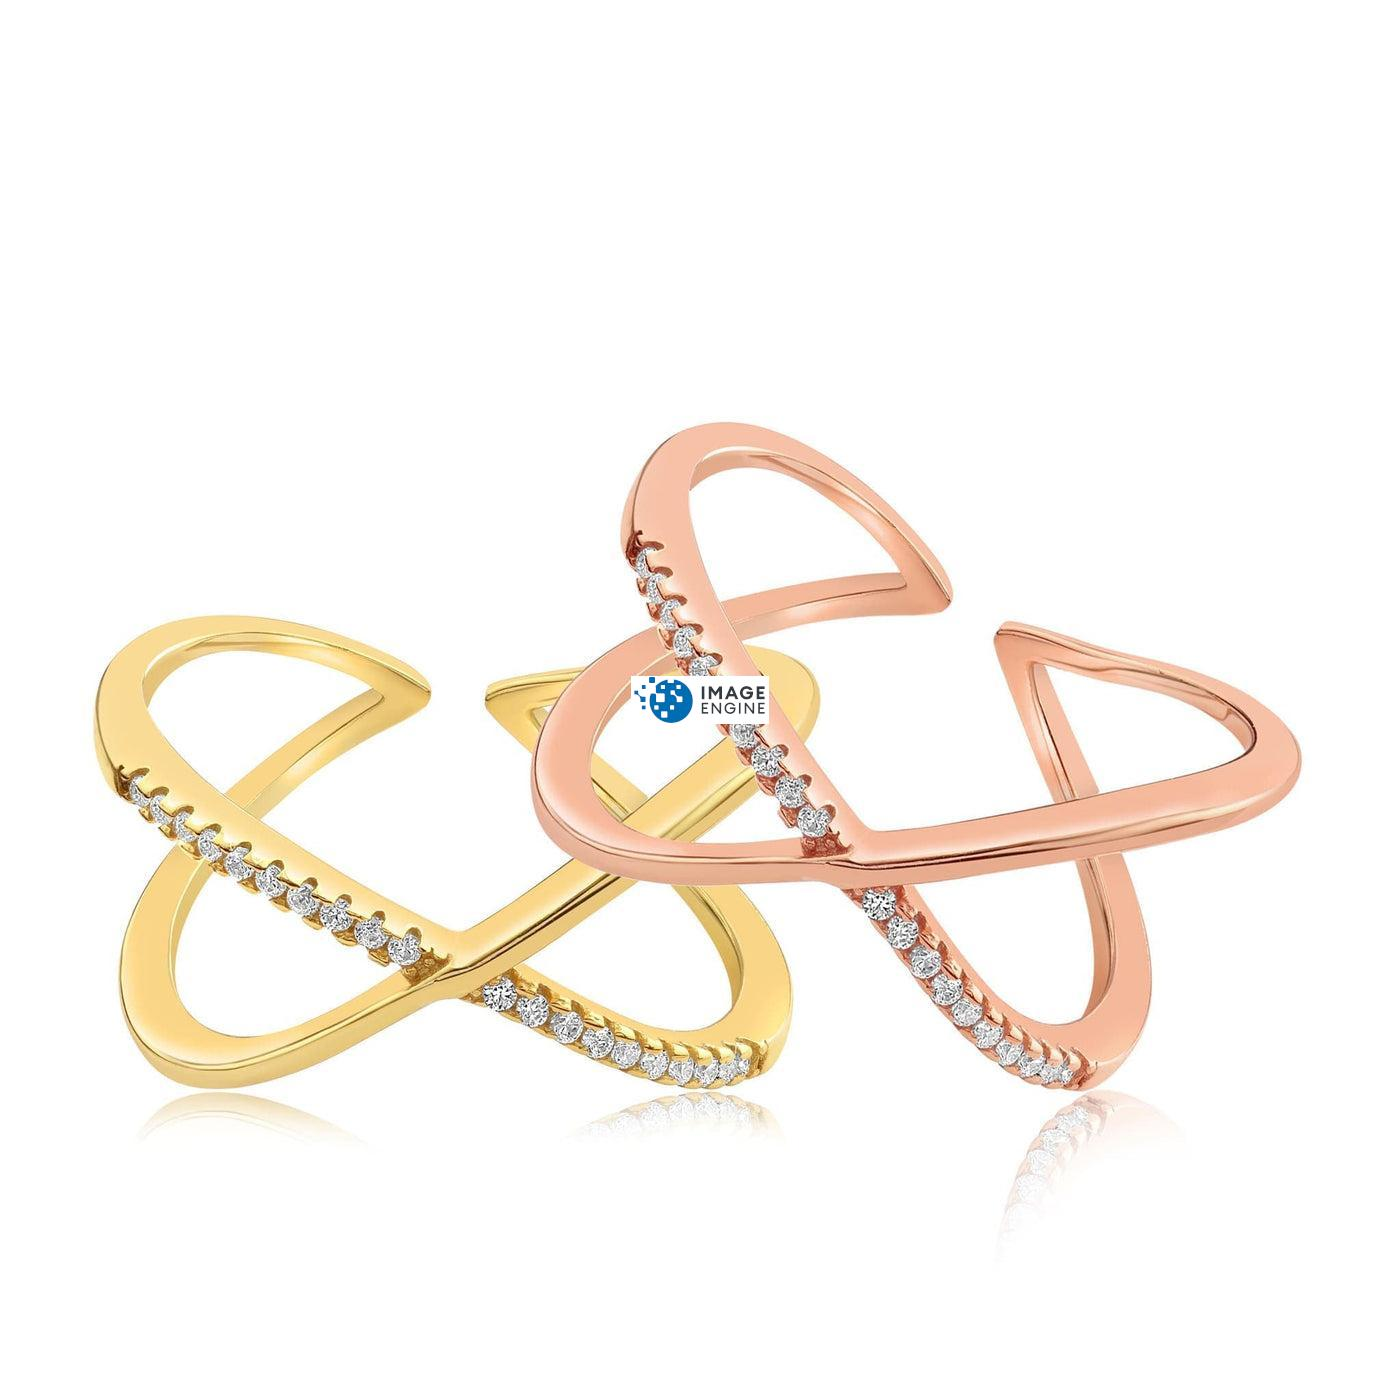 Nadia X Infinity Ring - Front View Side by Side - 18K Rose Gold Vermeil and 18K Yellow Gold Vermeil